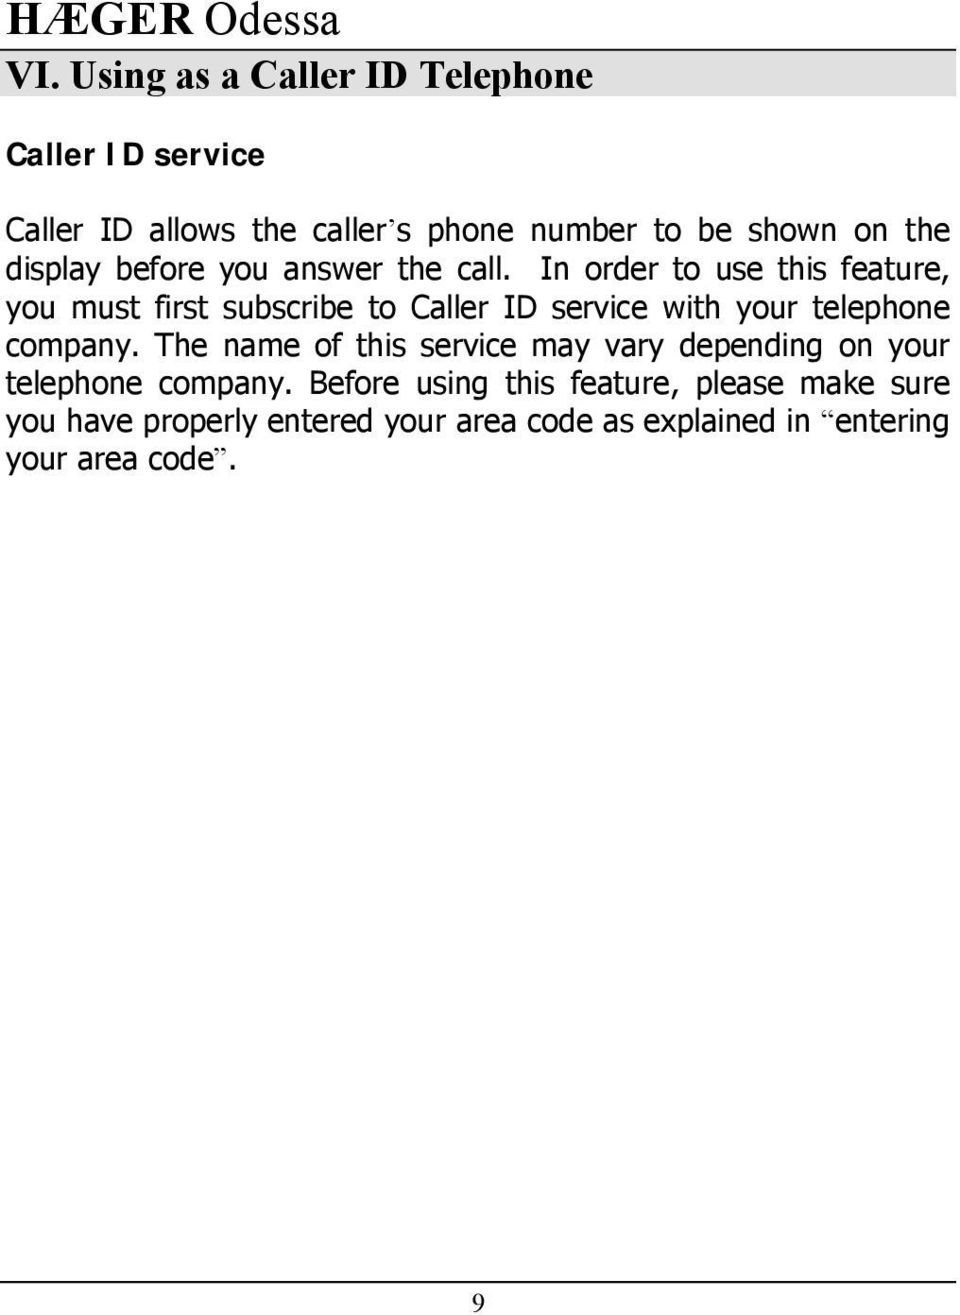 In order to use this feature, you must first subscribe to Caller ID service with your telephone company.